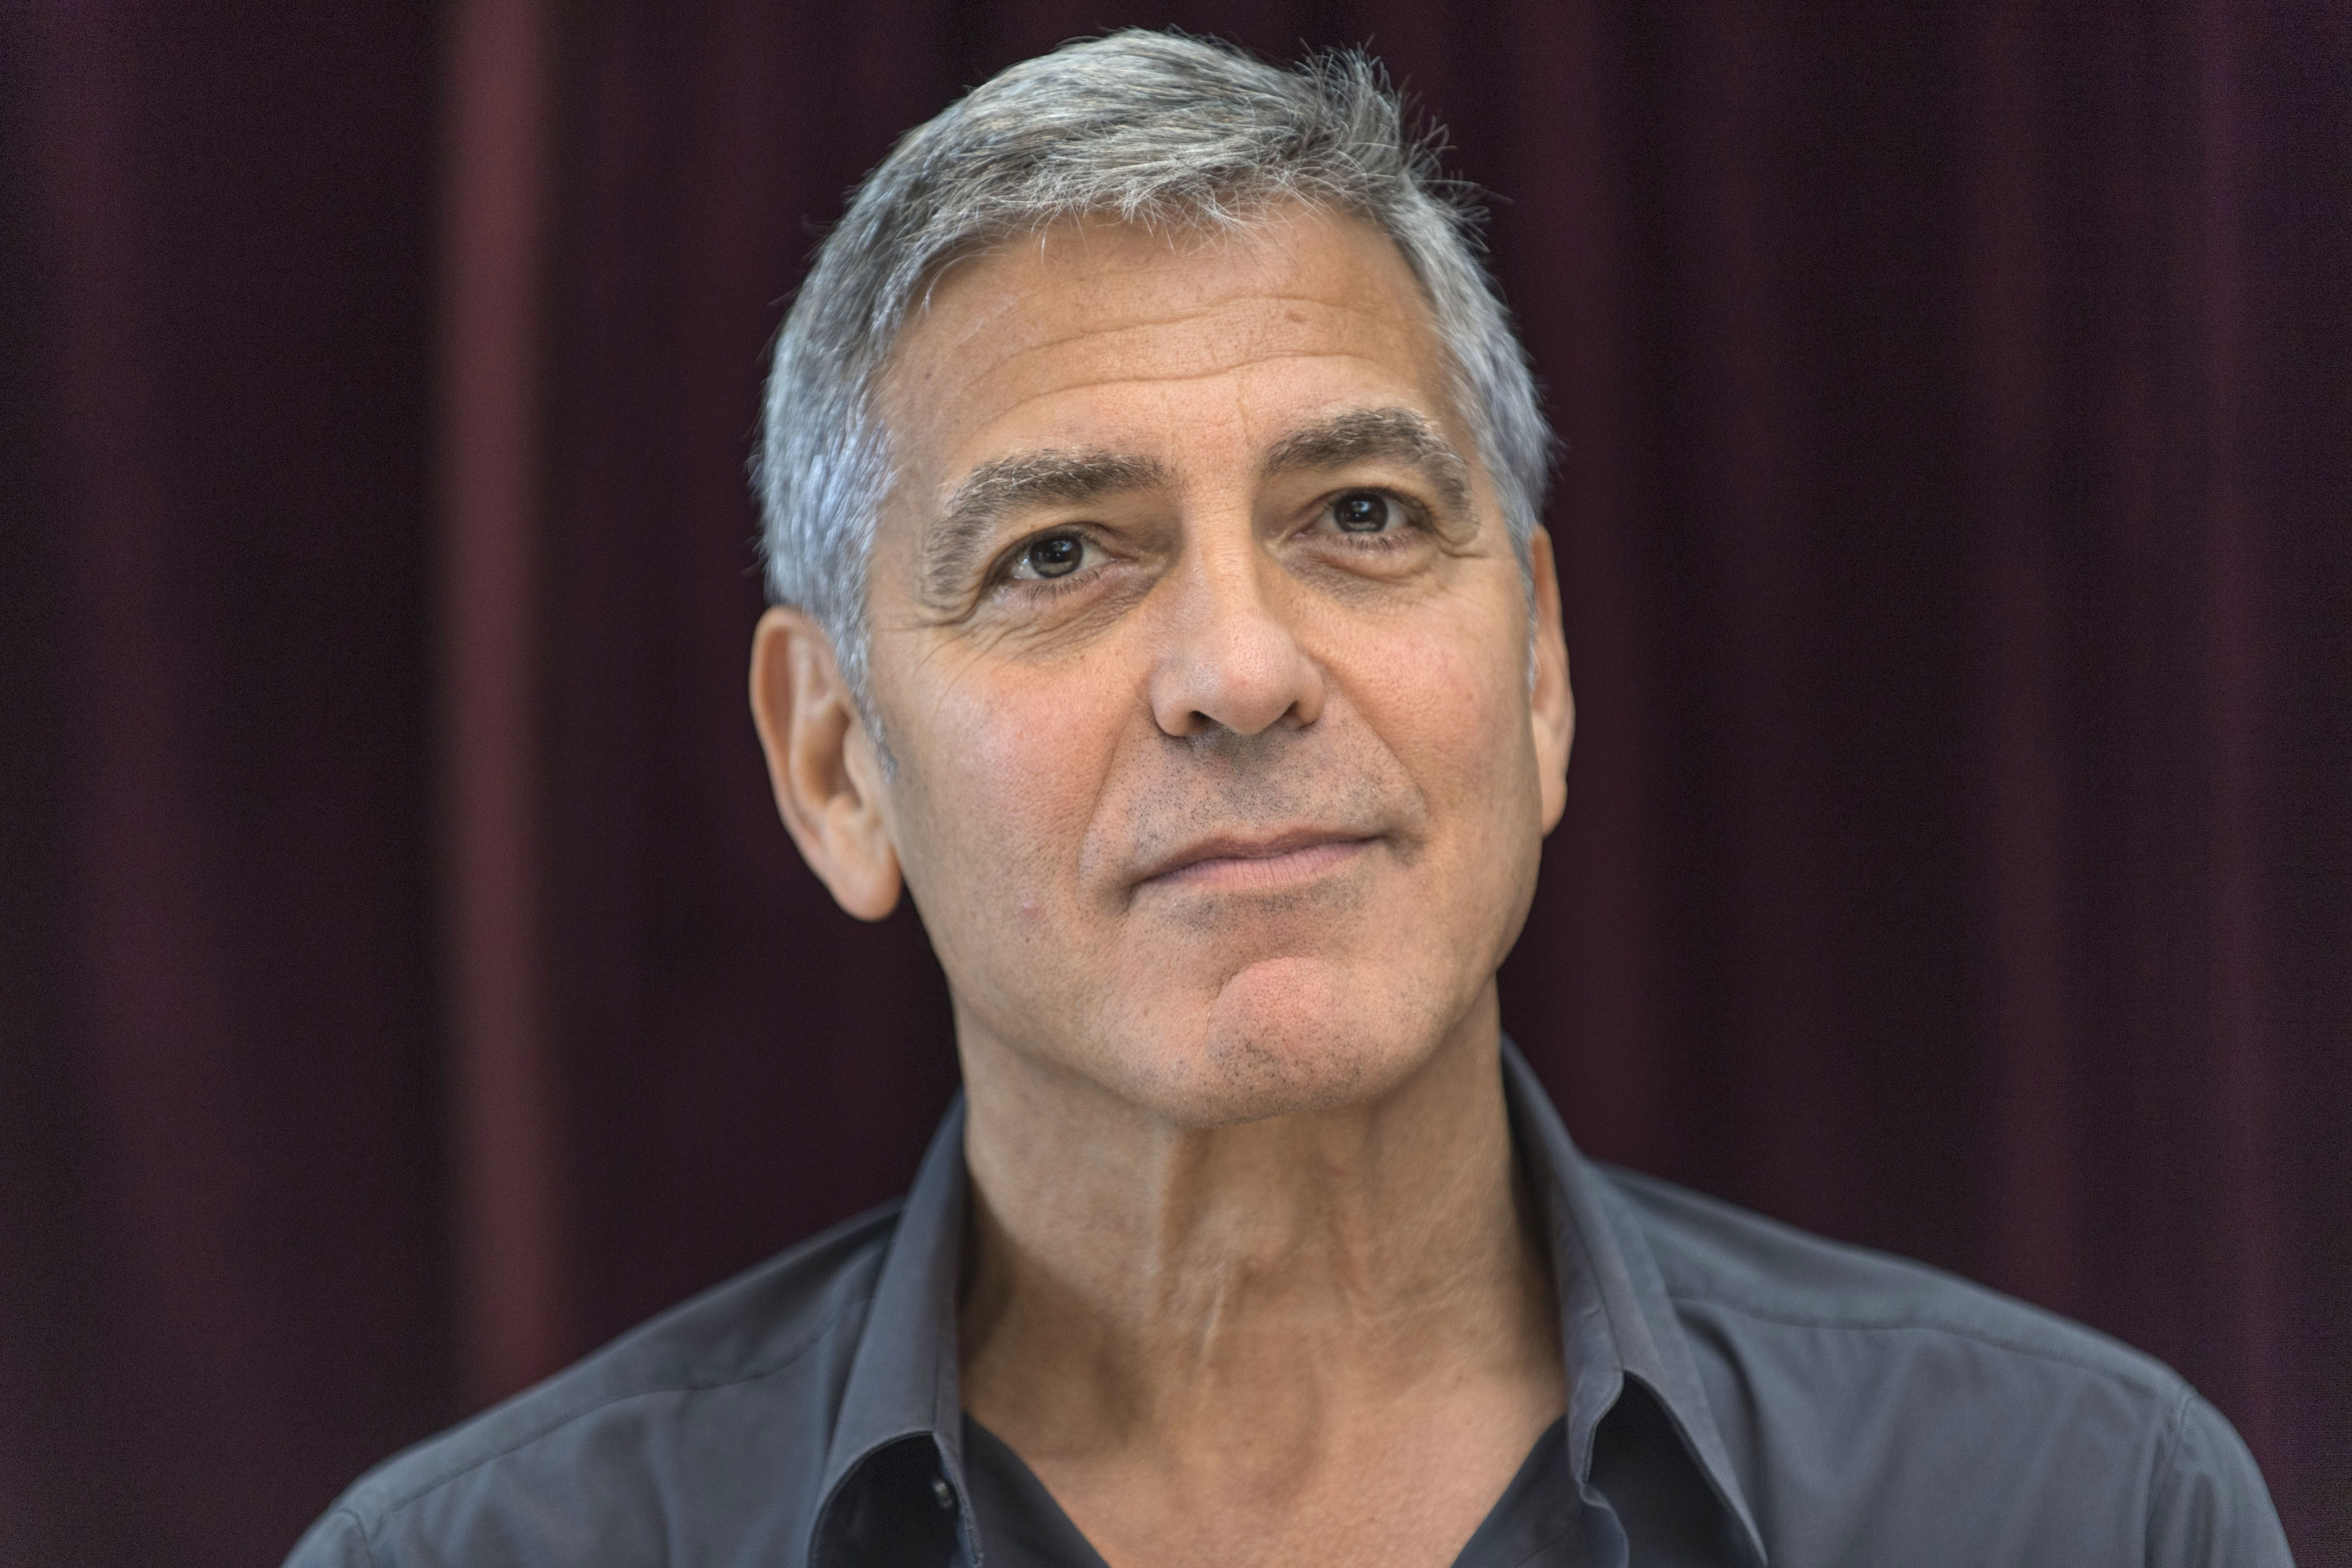 George Clooney Writes Letter to Parkland Students   IndieWire George Clooney